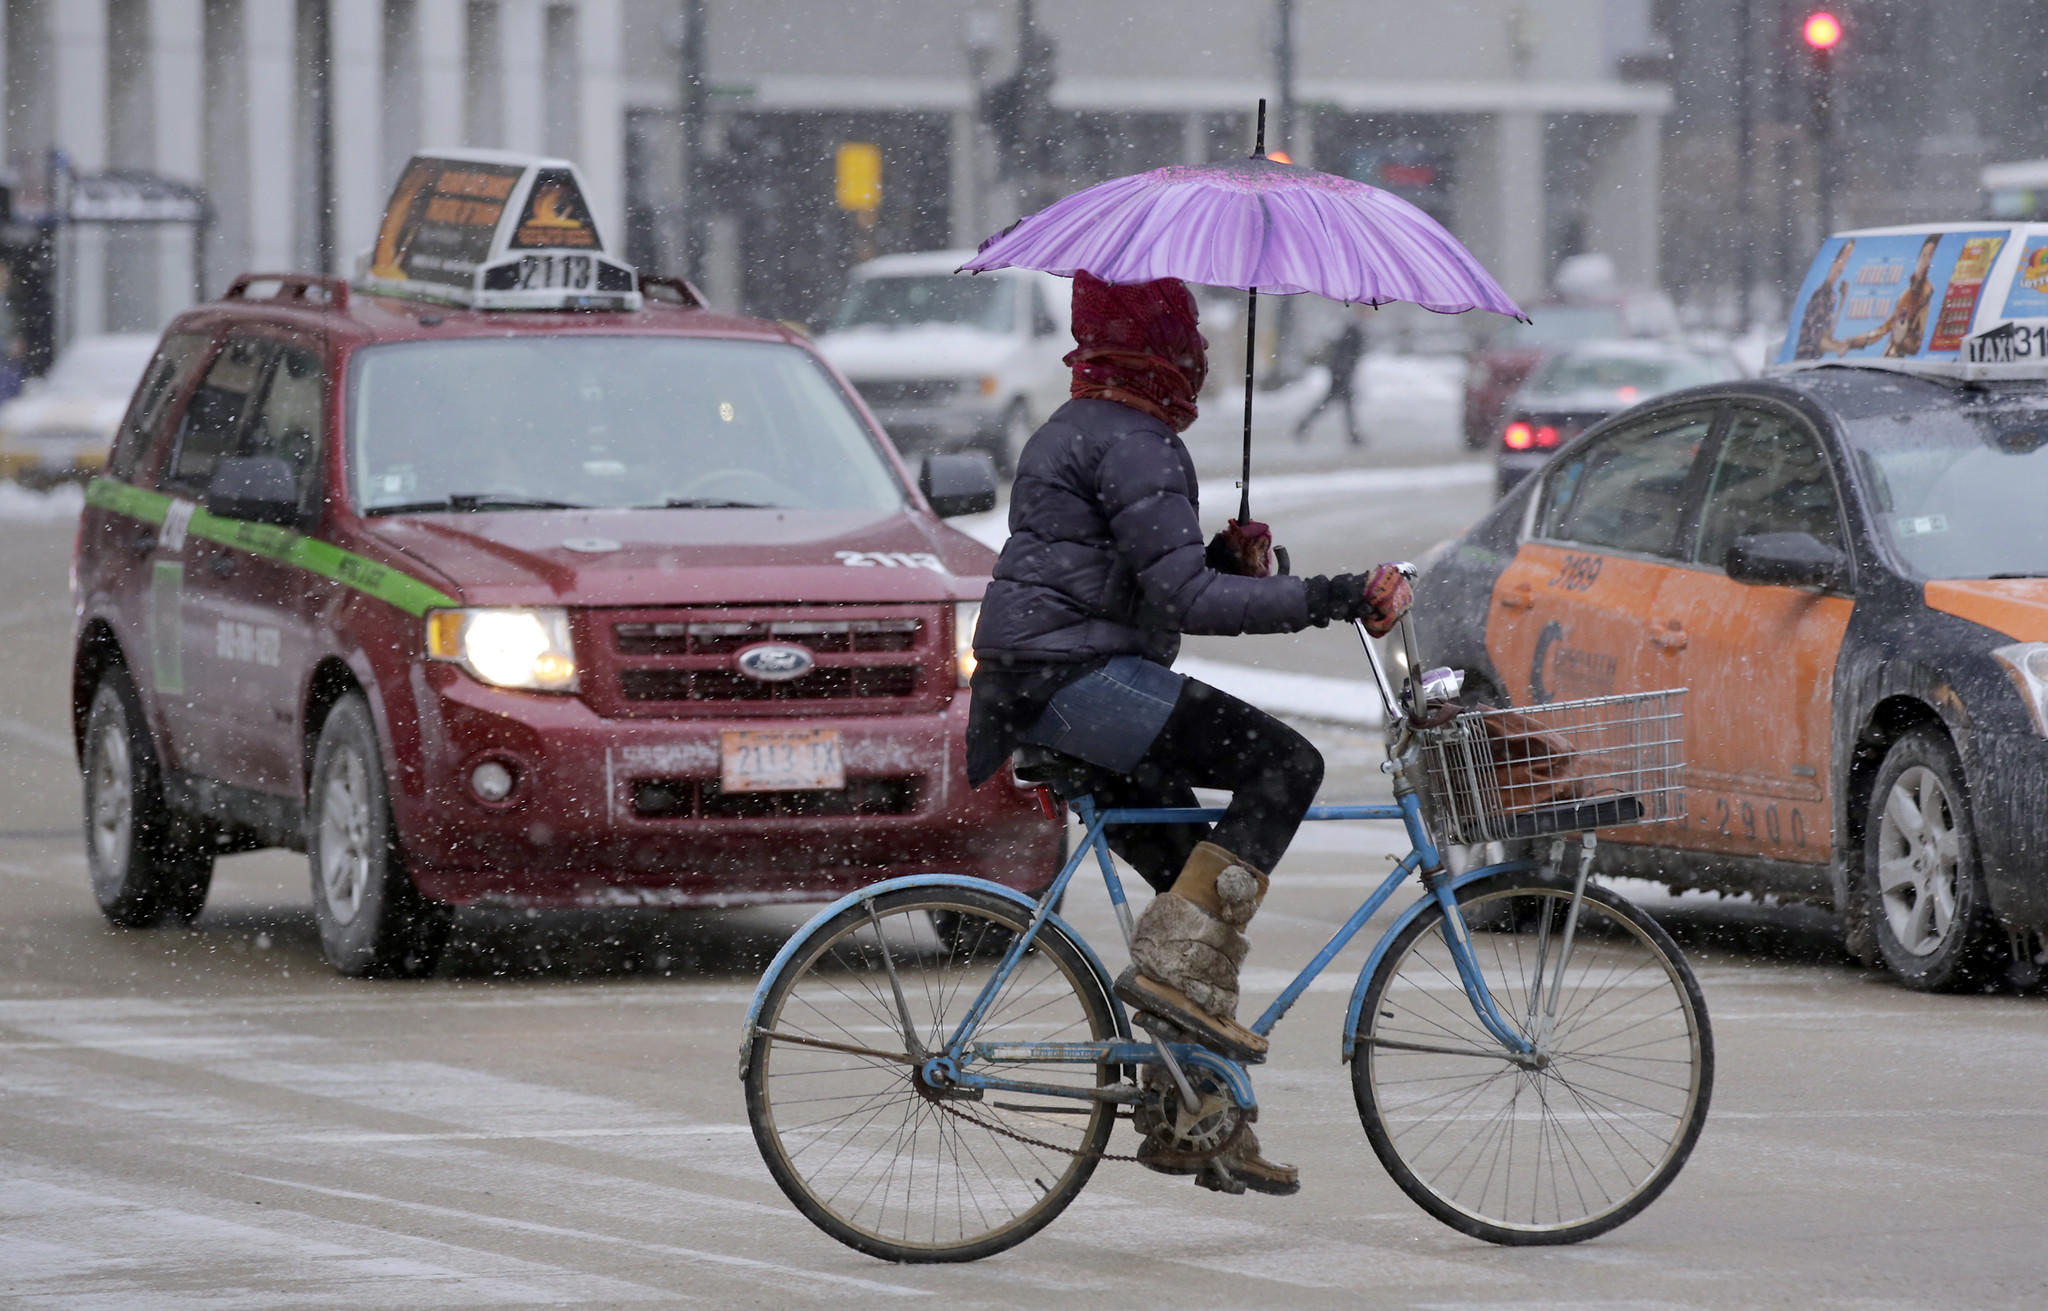 A cyclist displays dexterity and balance as she uses an umbrella against the snow.